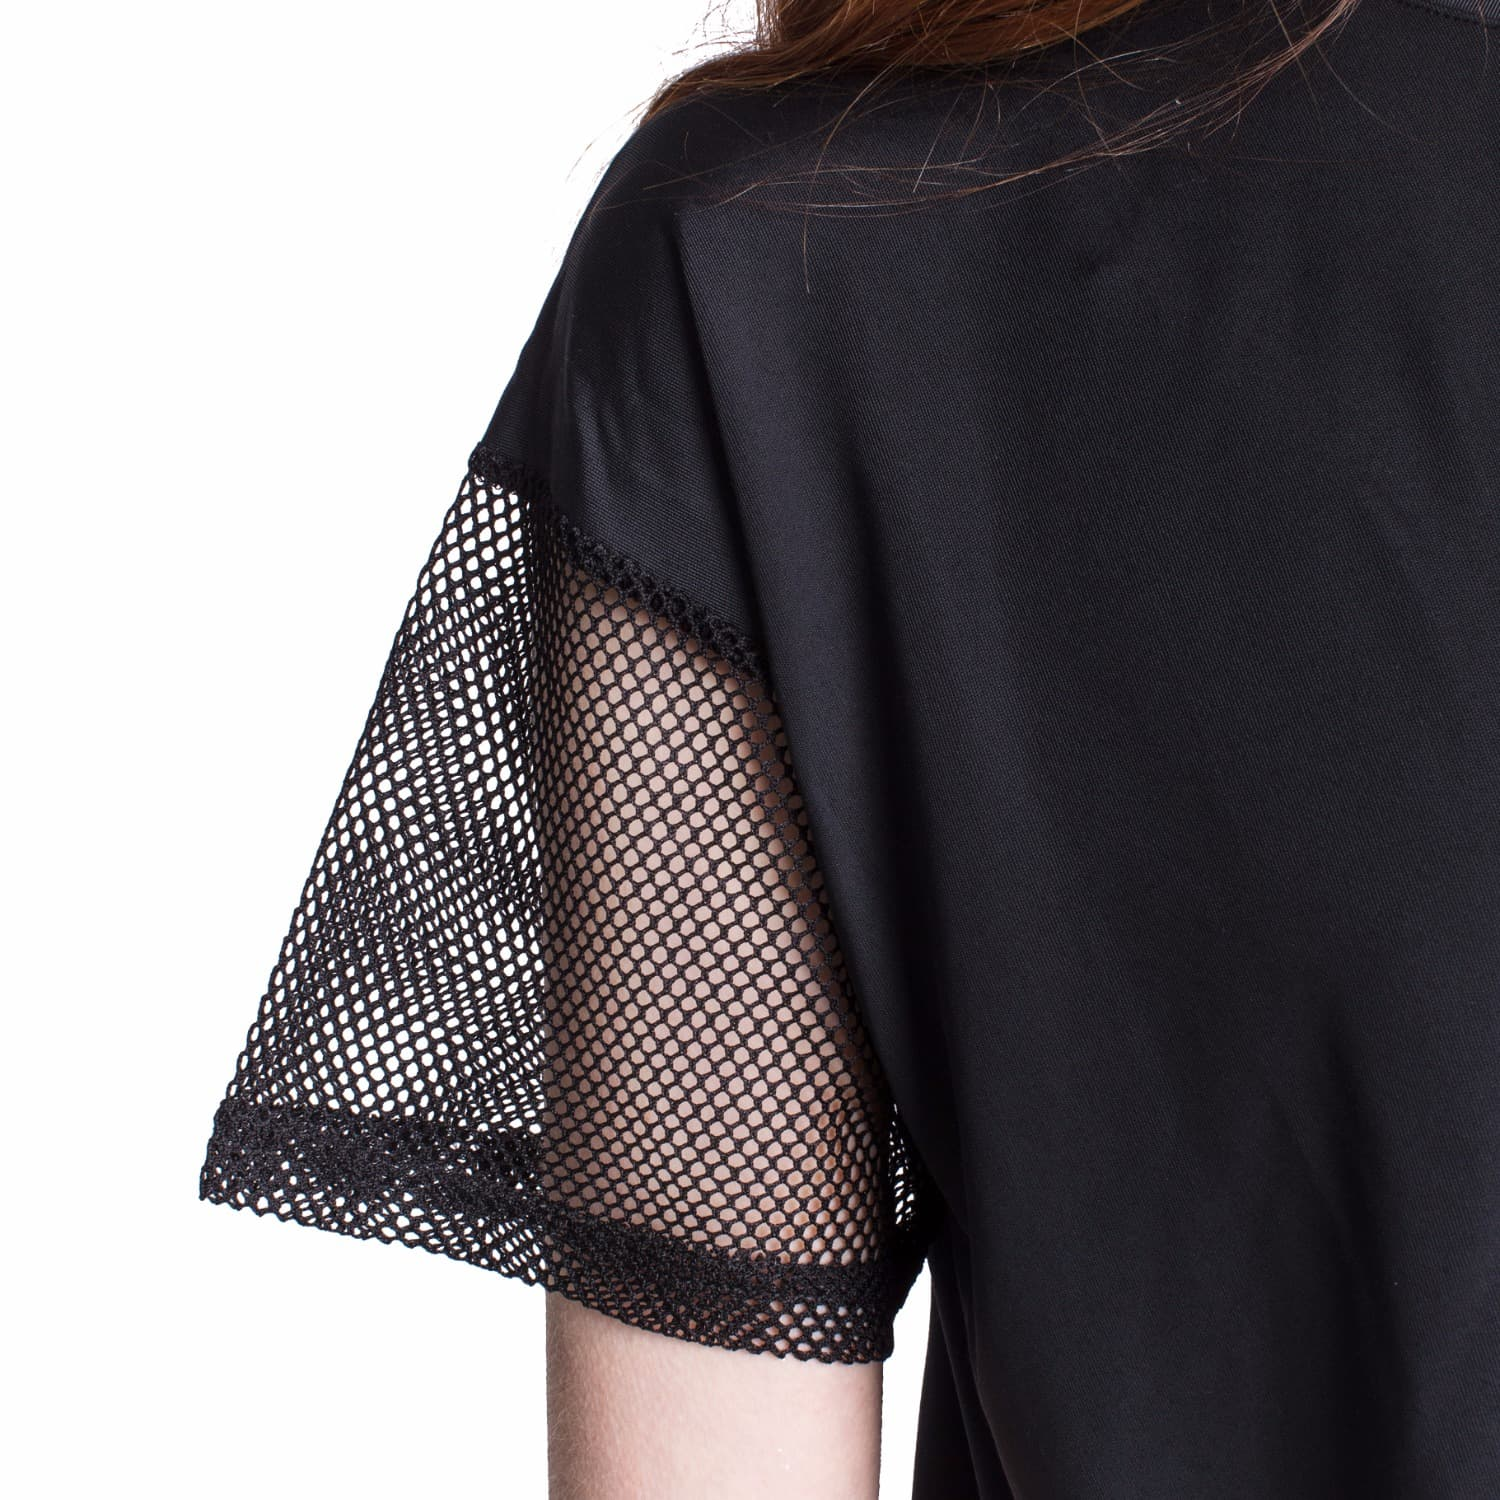 ffed4926859 Black T-Shirt with Mesh Sleeves & Twist Front by Okayla